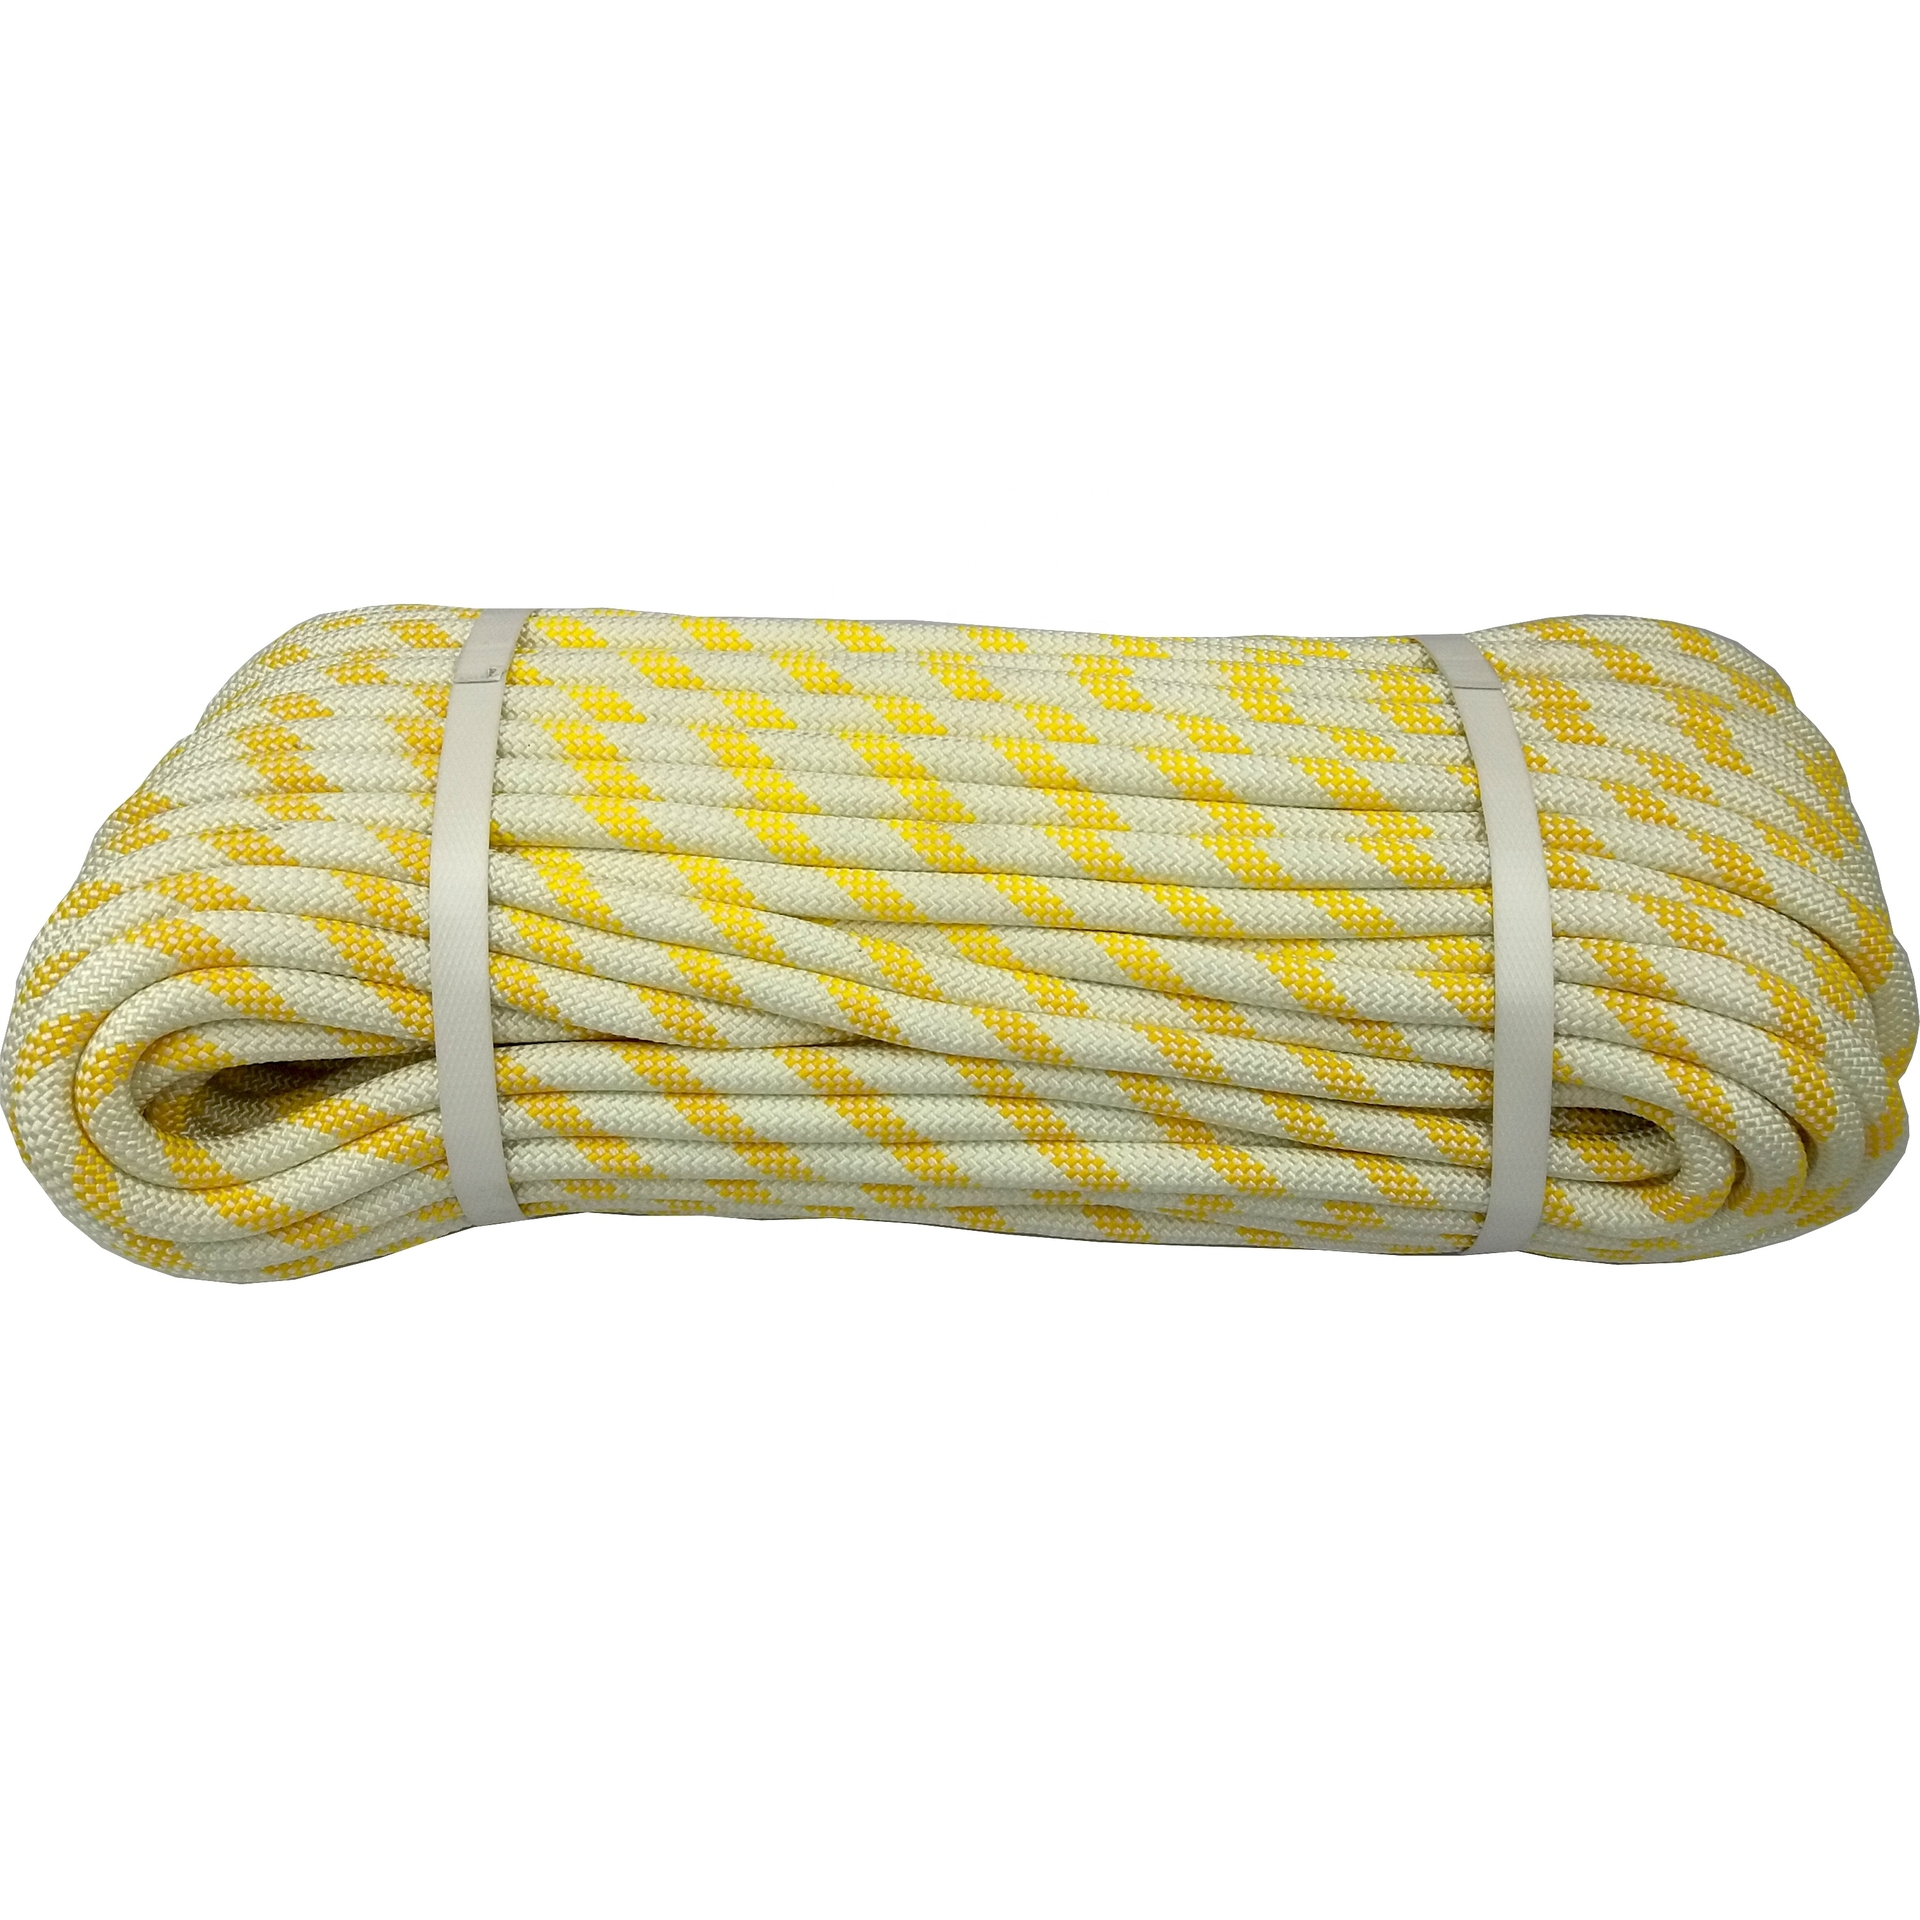 best climbing rope for rescue safety rope diameter 10.8mm